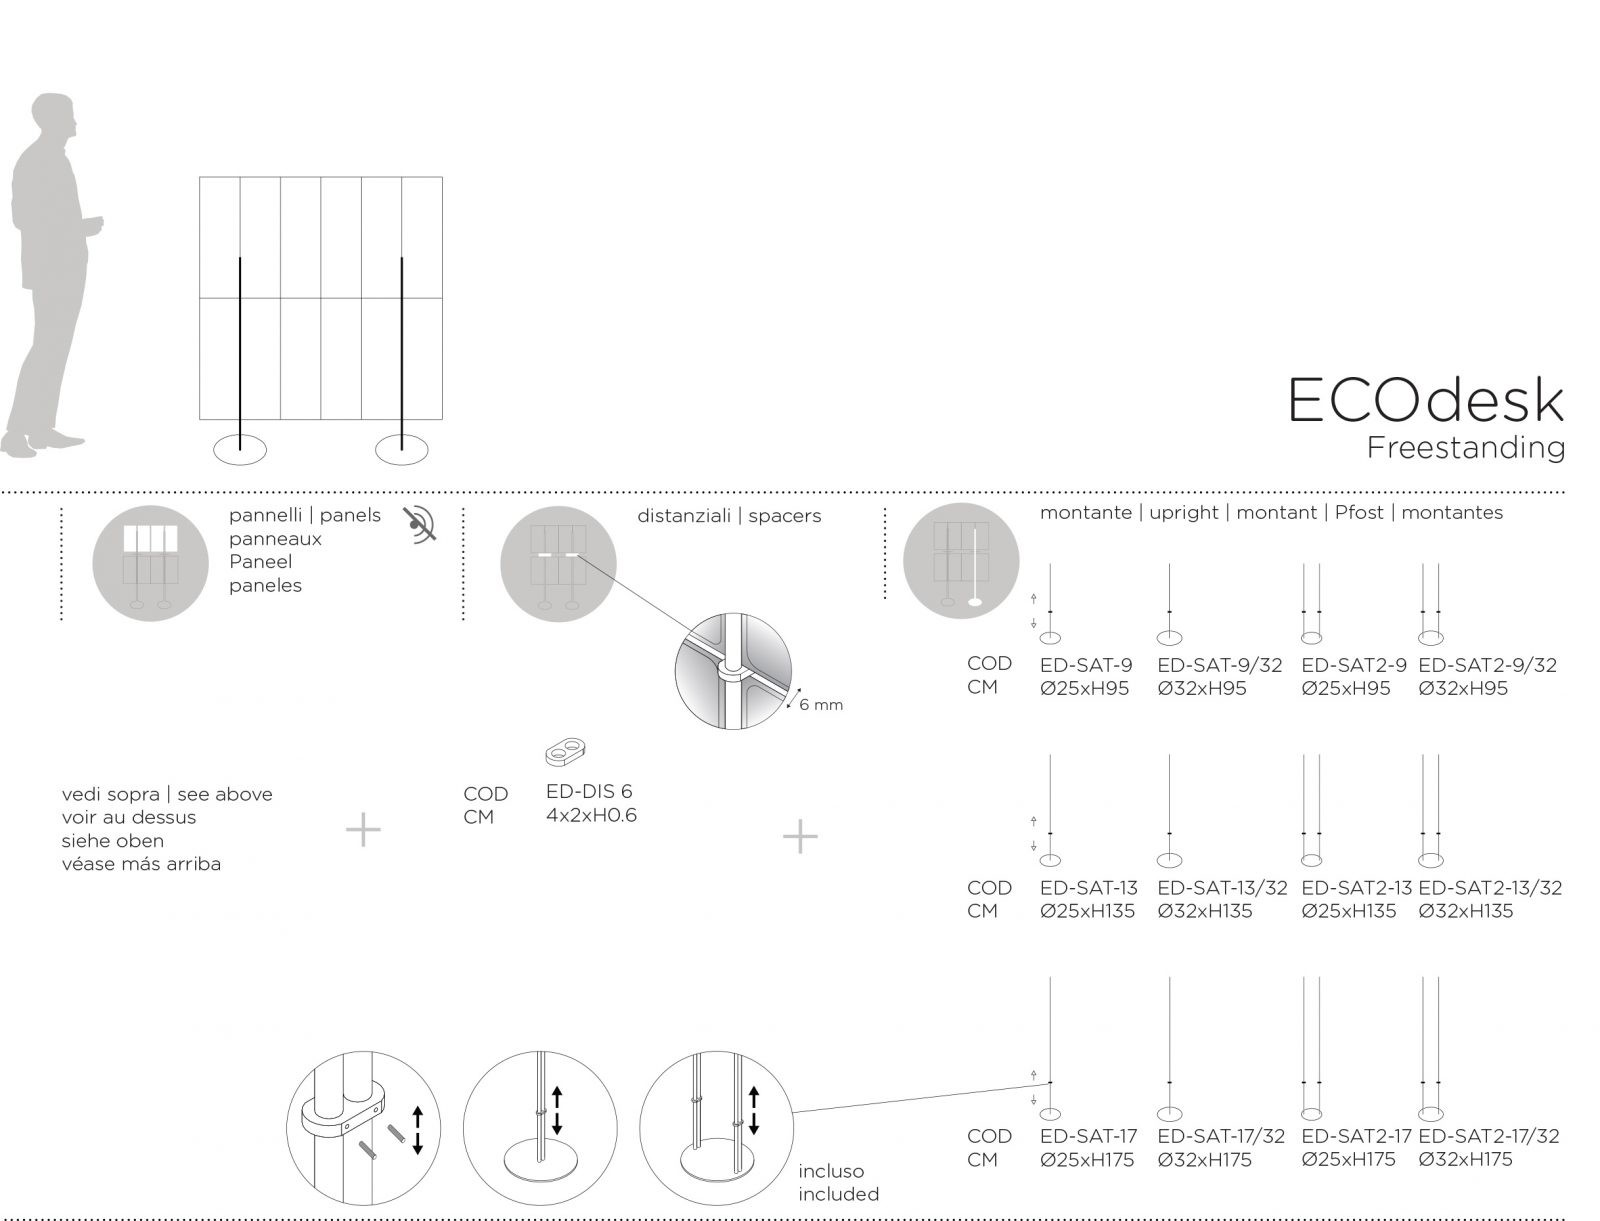 ECOdesk Freestanding Dimensions